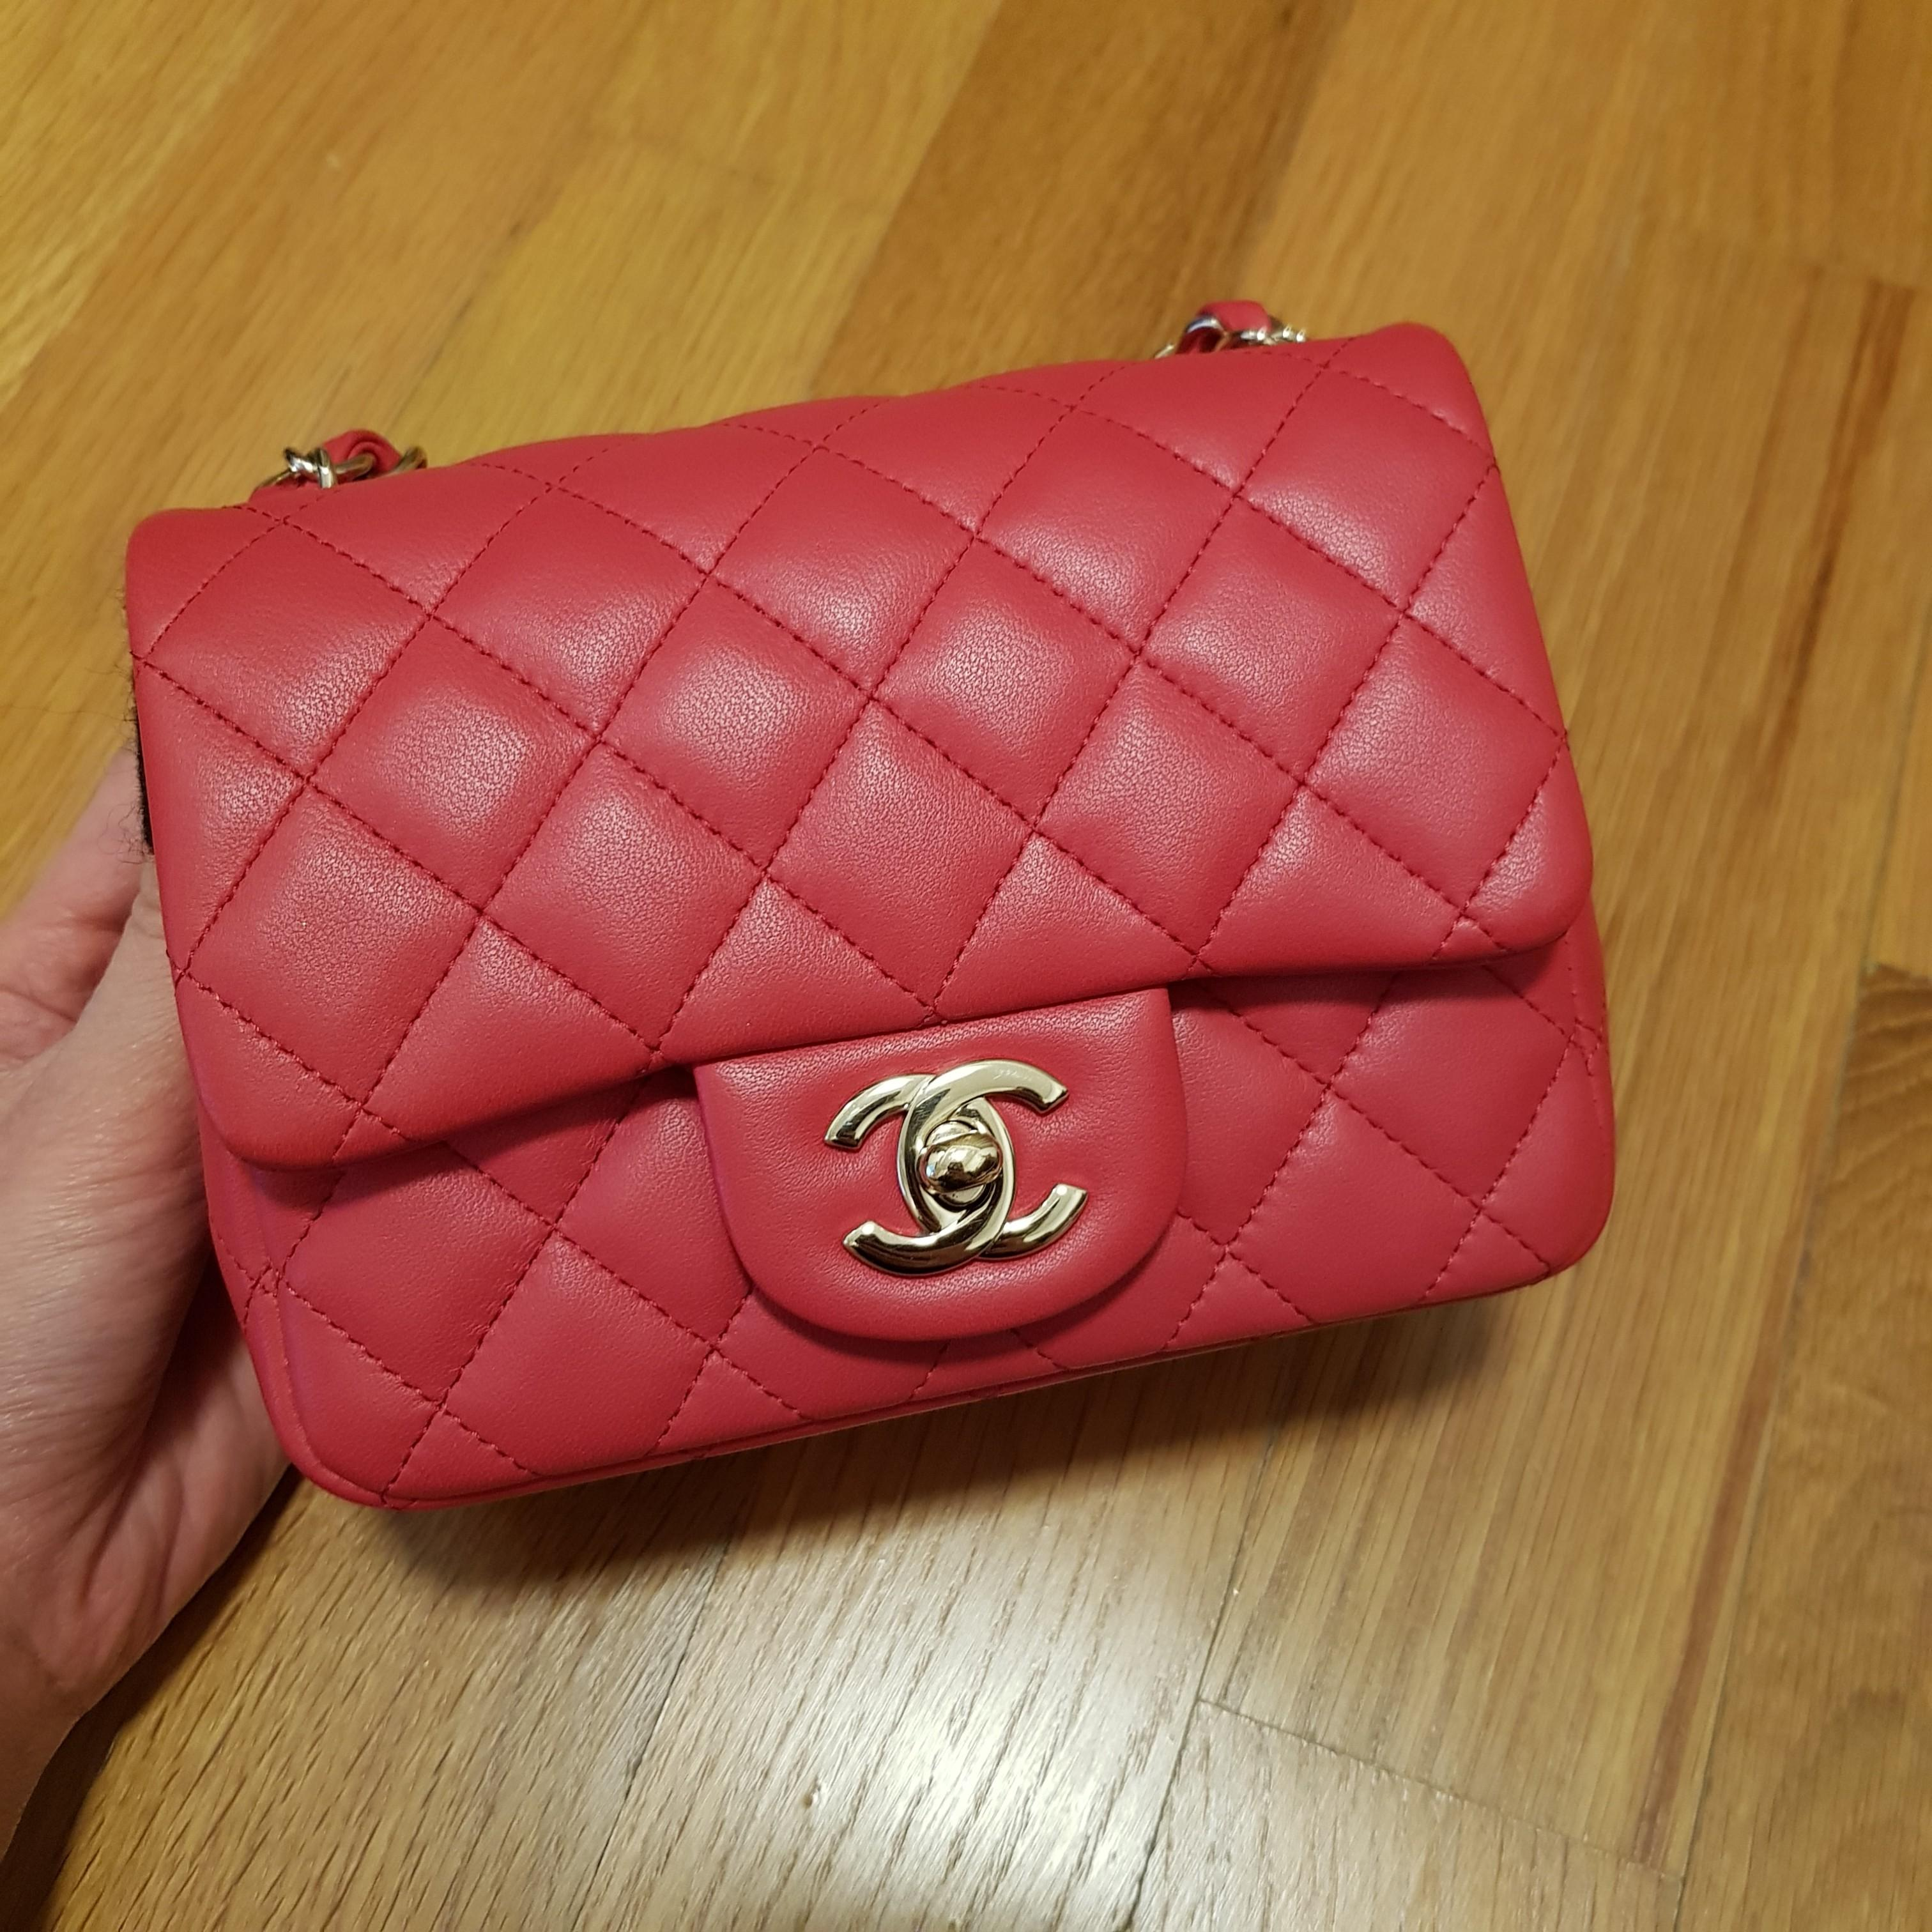 b979a98b Chanel Mini Square Flap in Coral Hot pink GHW #25, Luxury, Bags ...